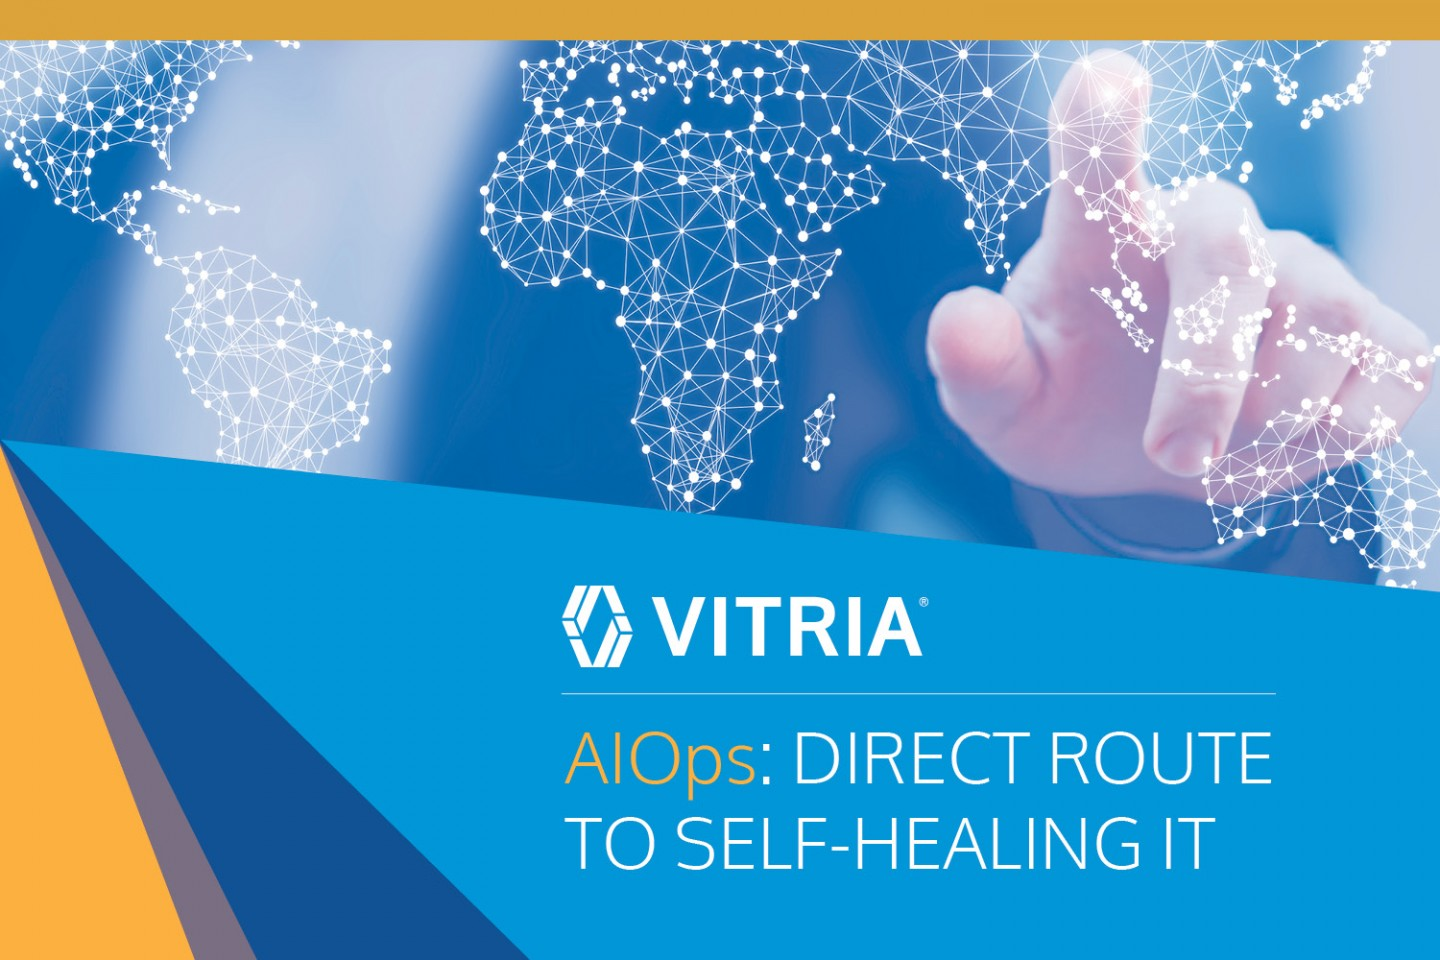 Download the Whitepaper: AIOps: A Direct Route to Self-Healing IT